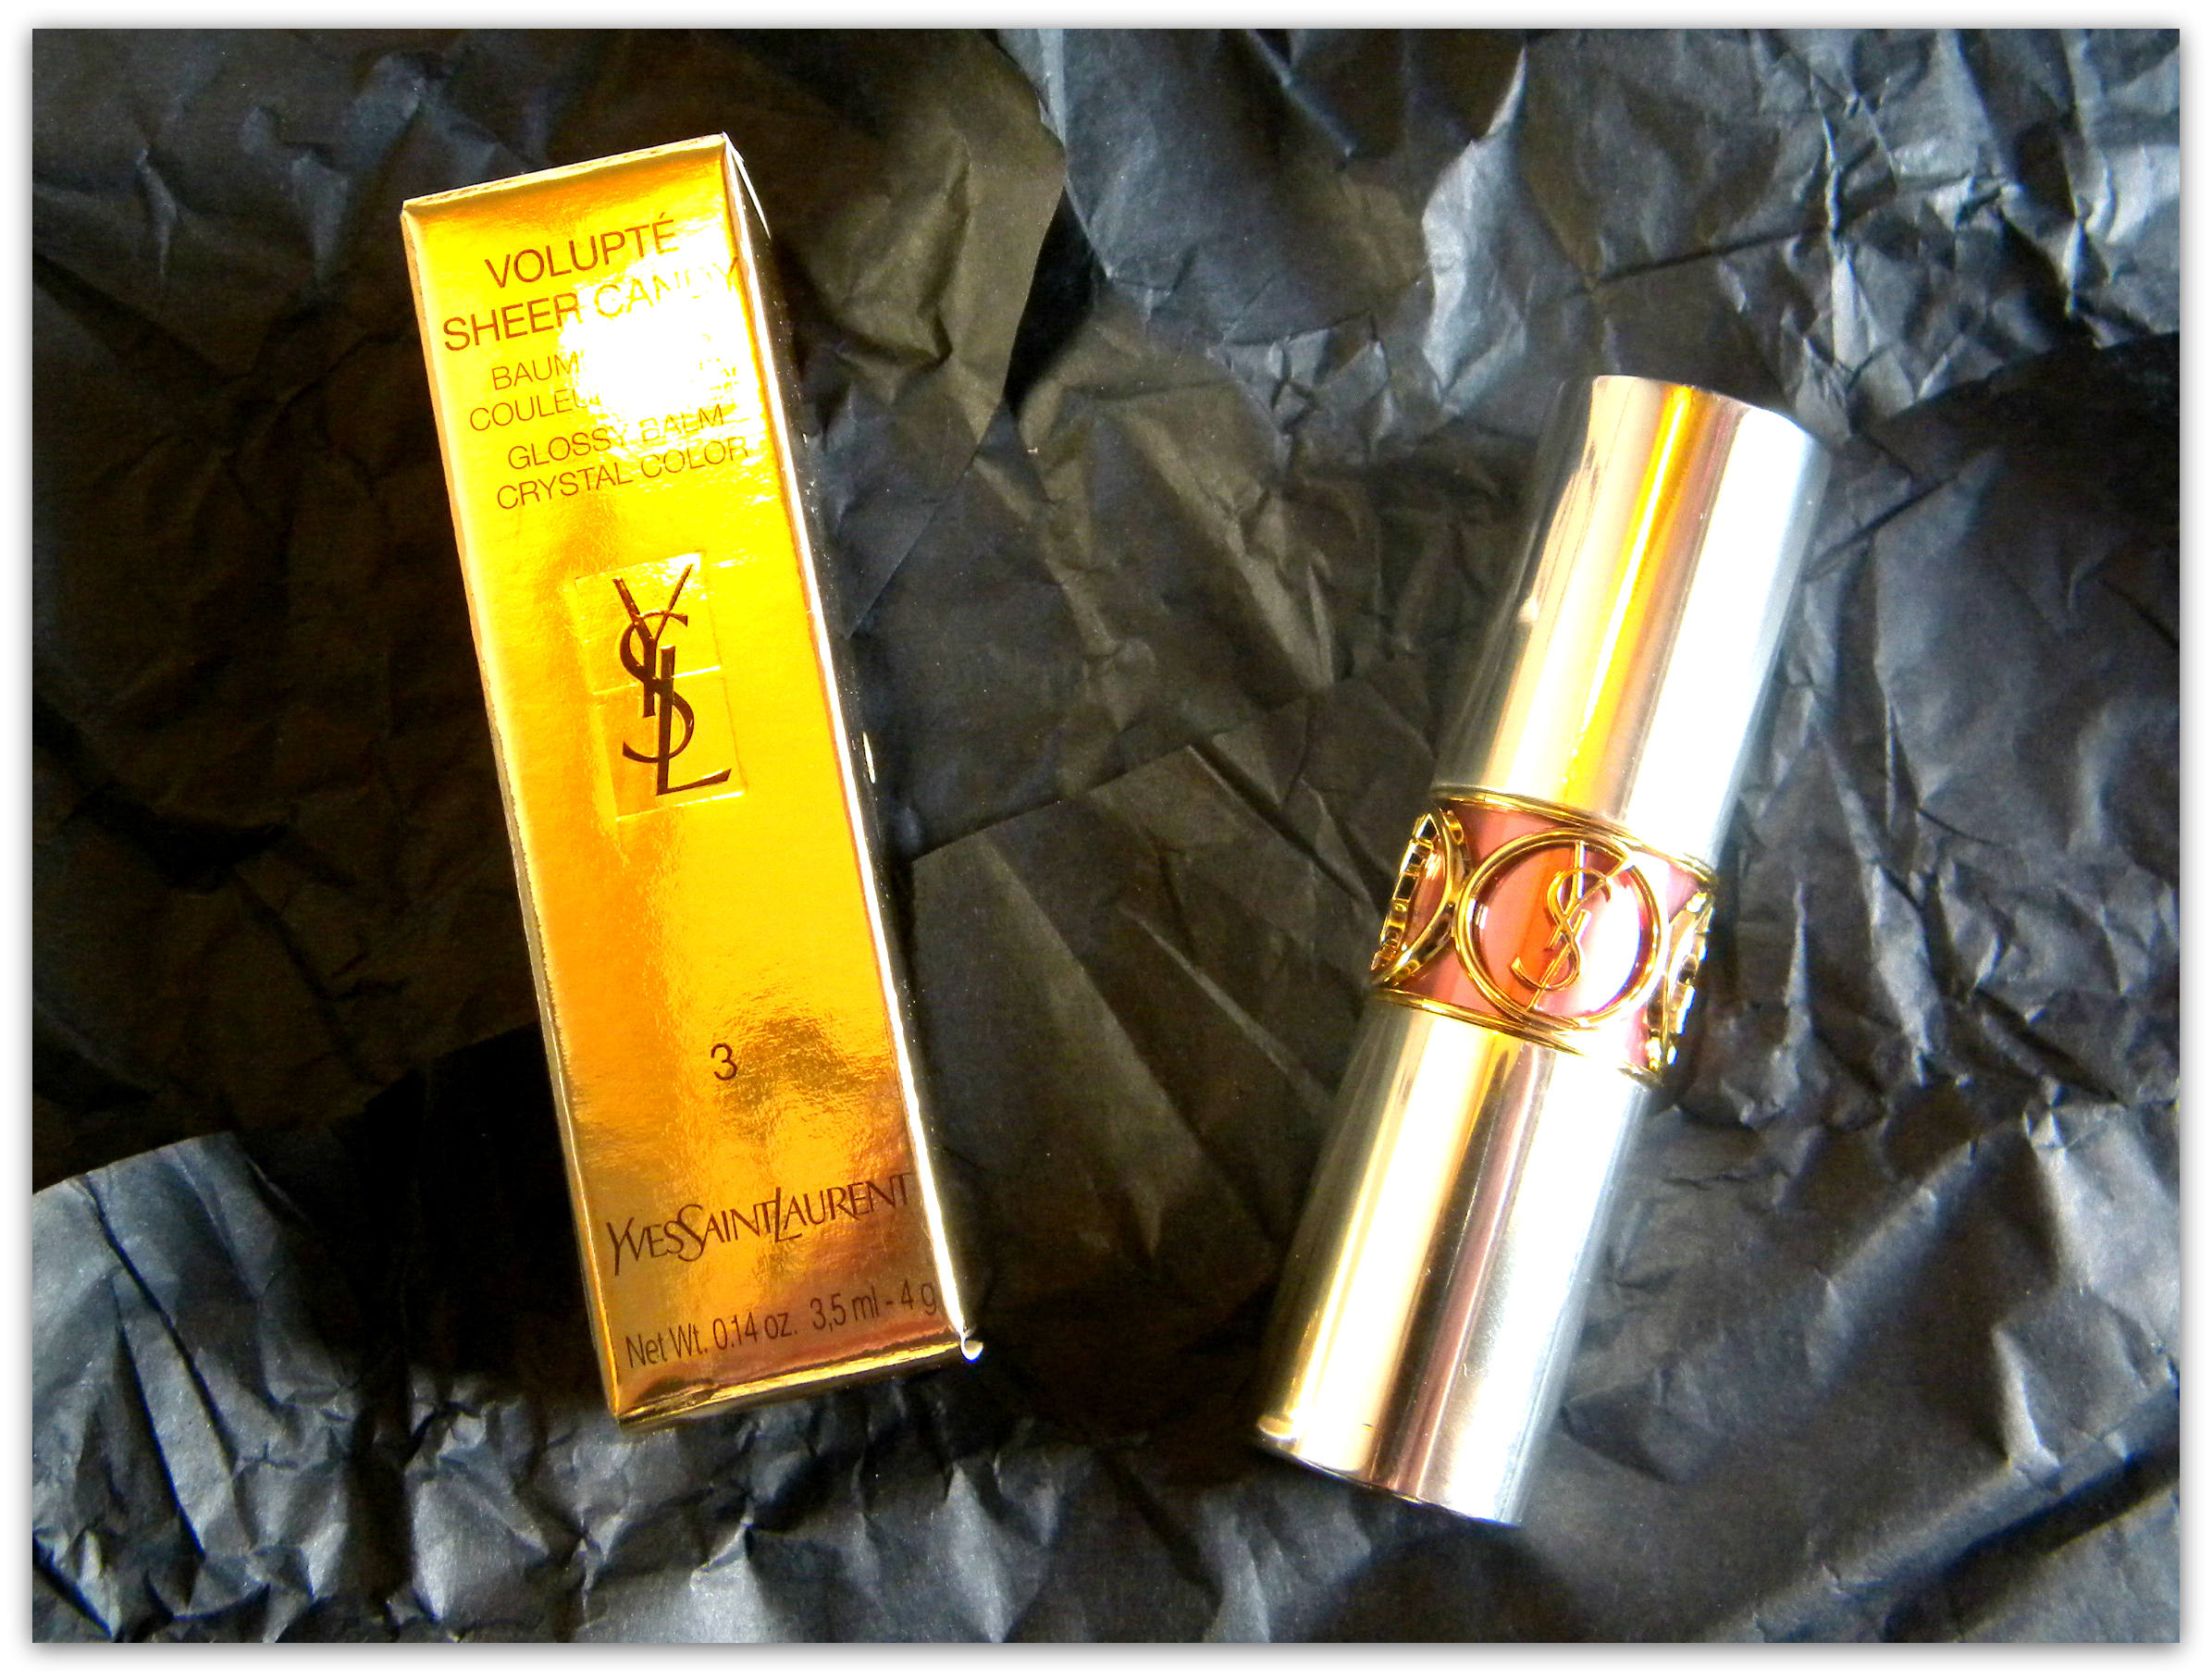 YSL Sheer Candy www.jilliandanielle.com